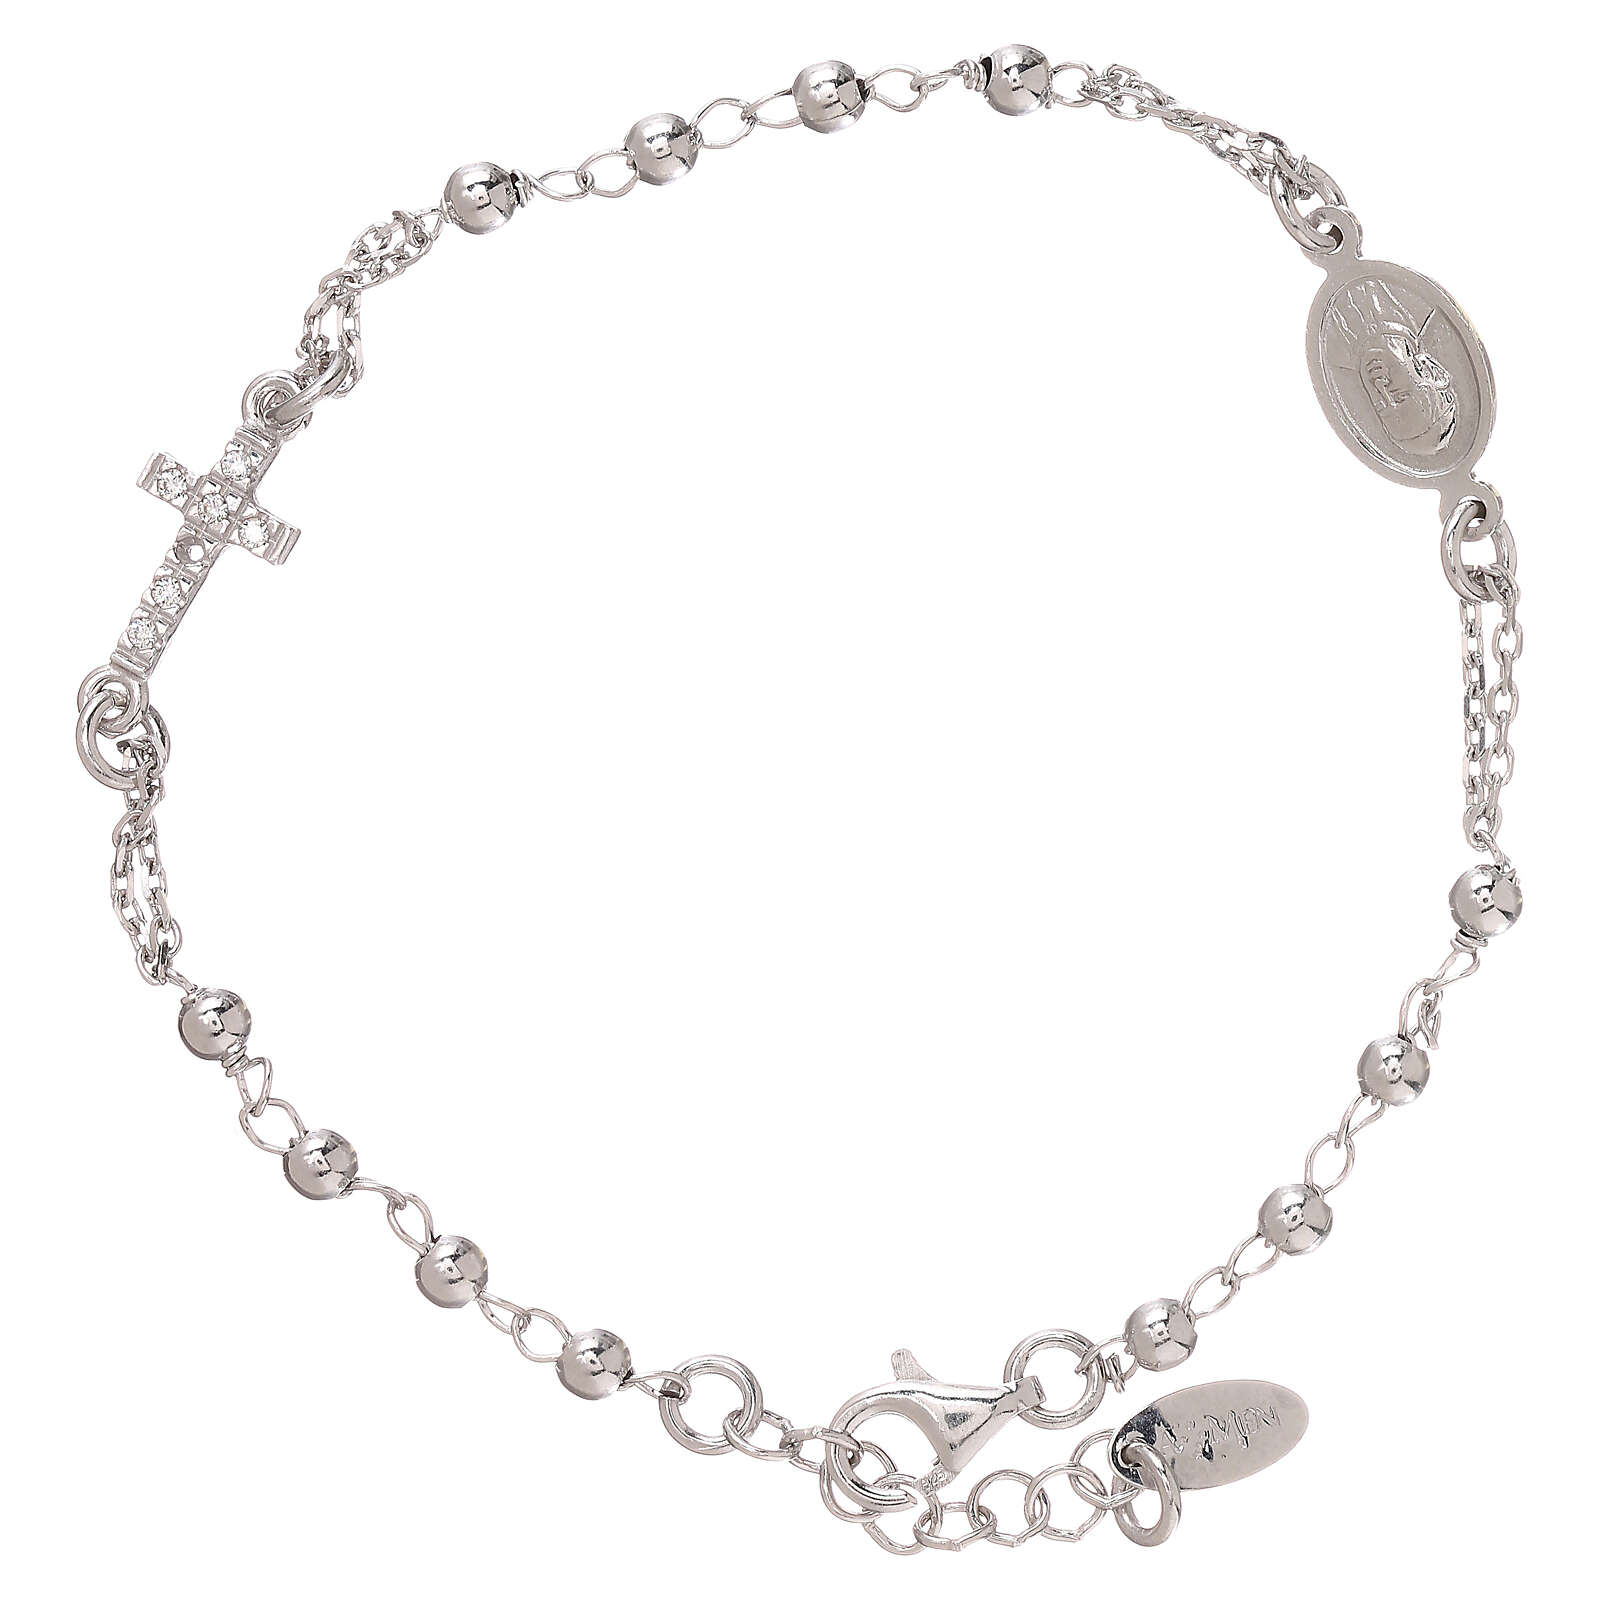 Rosary AMEN Bracelet Pavè Cross silver 925, Rhodium finish 4